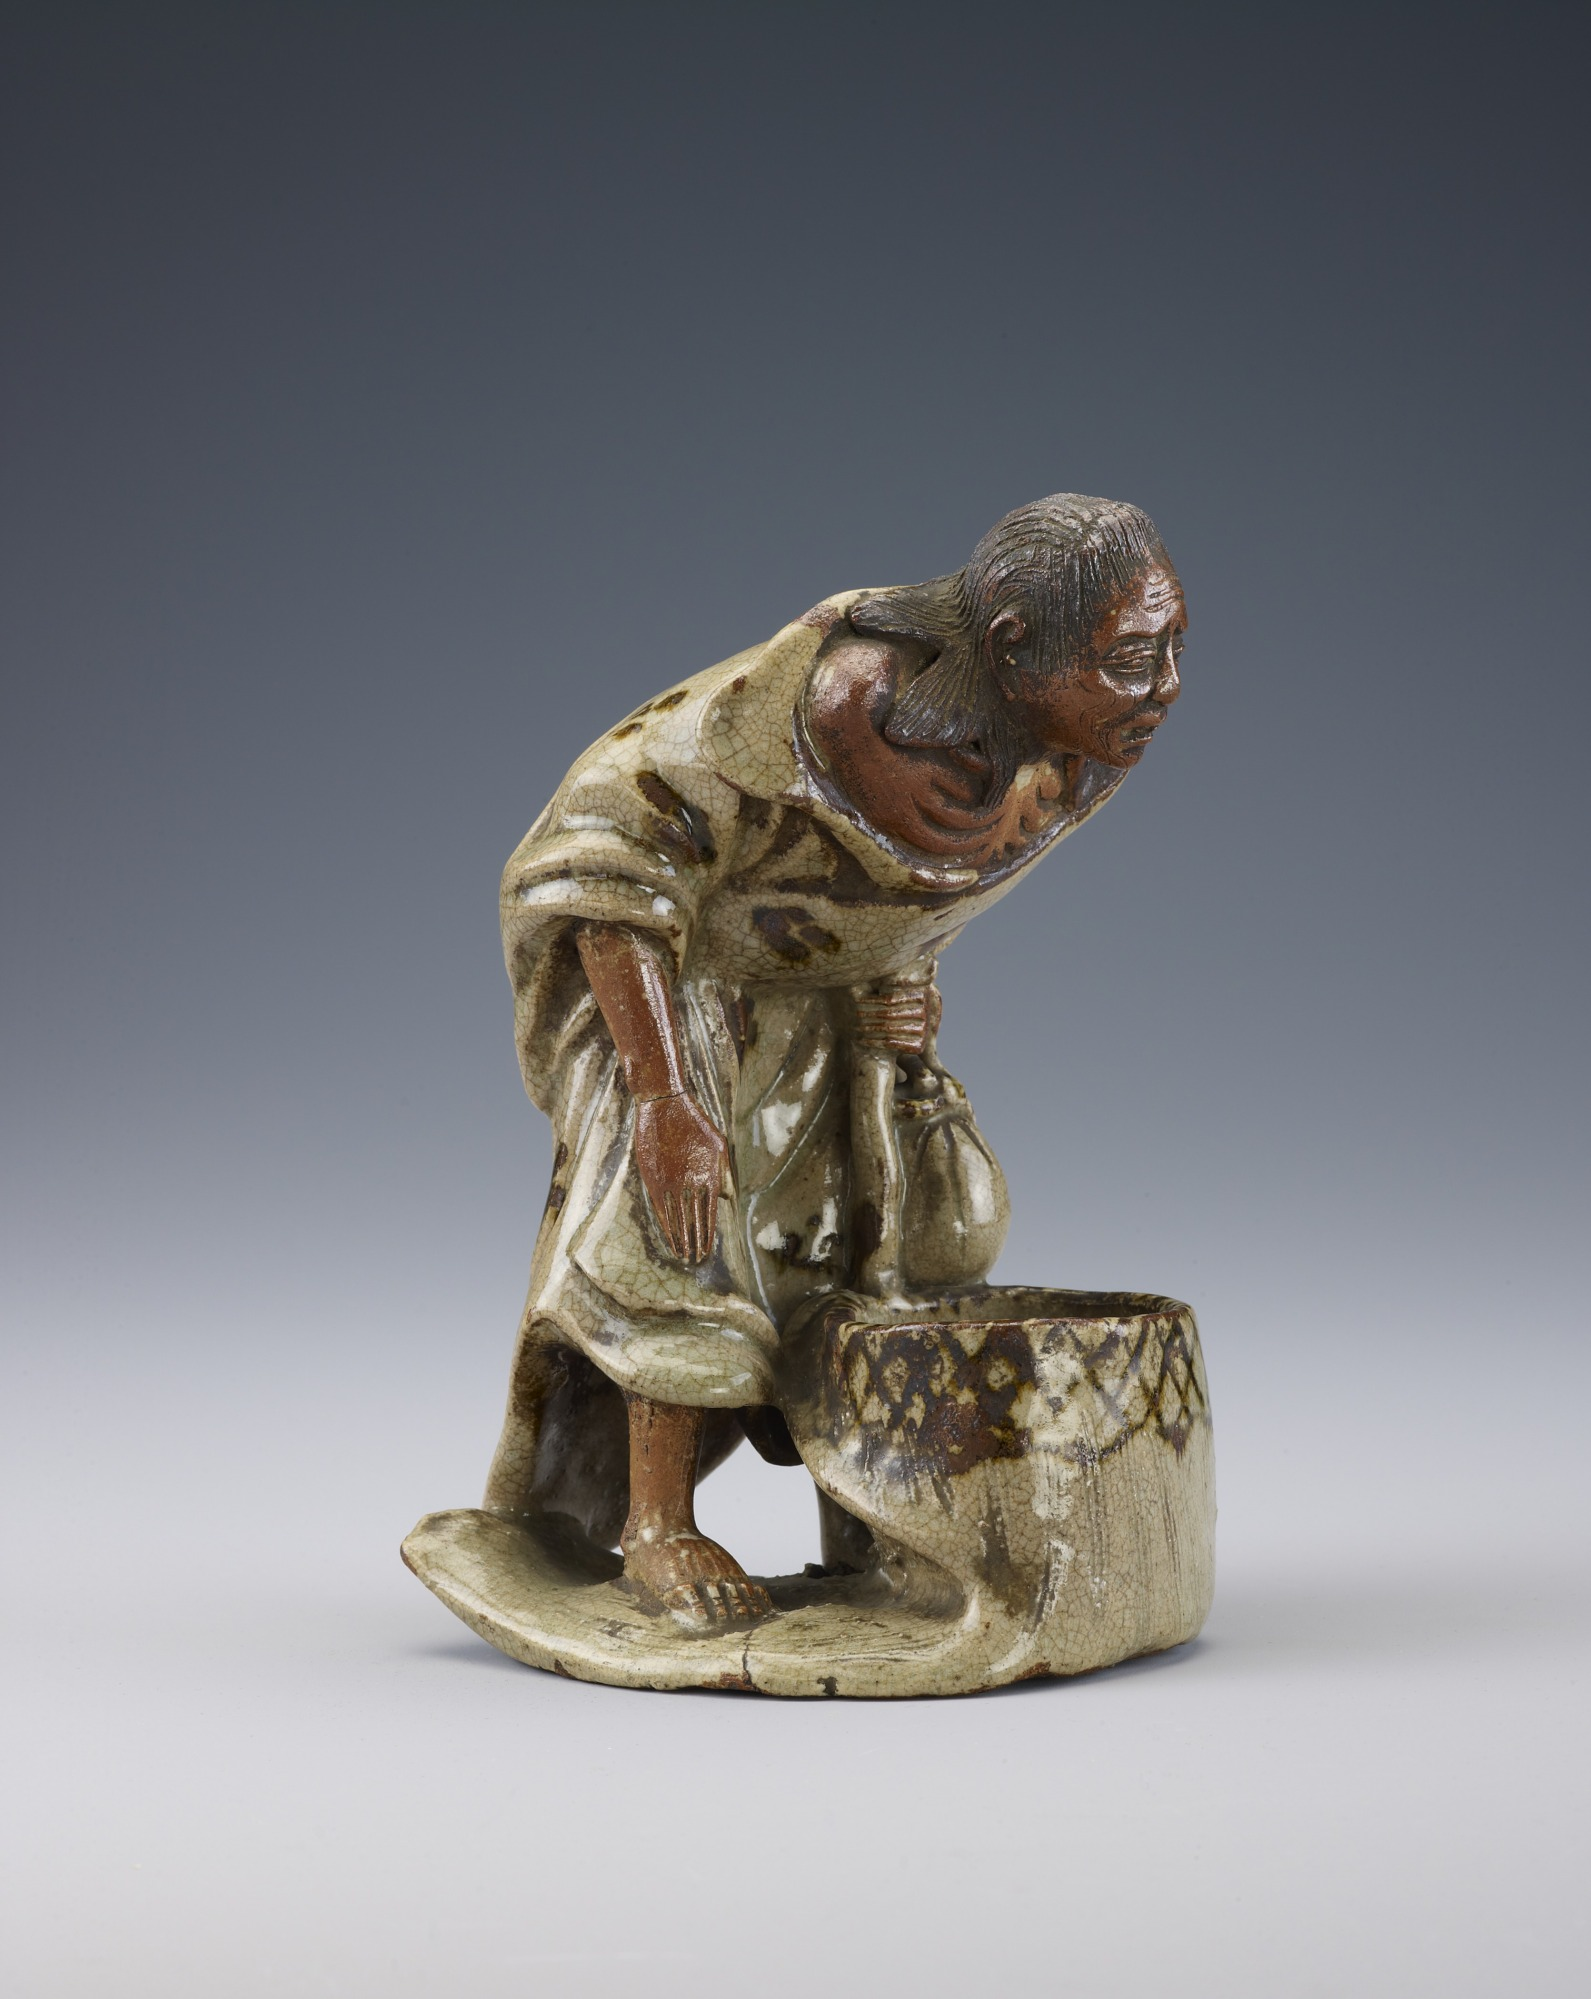 Figure of elderly person in tattered kimono leaning on staff, possibly Sotoba Komachi